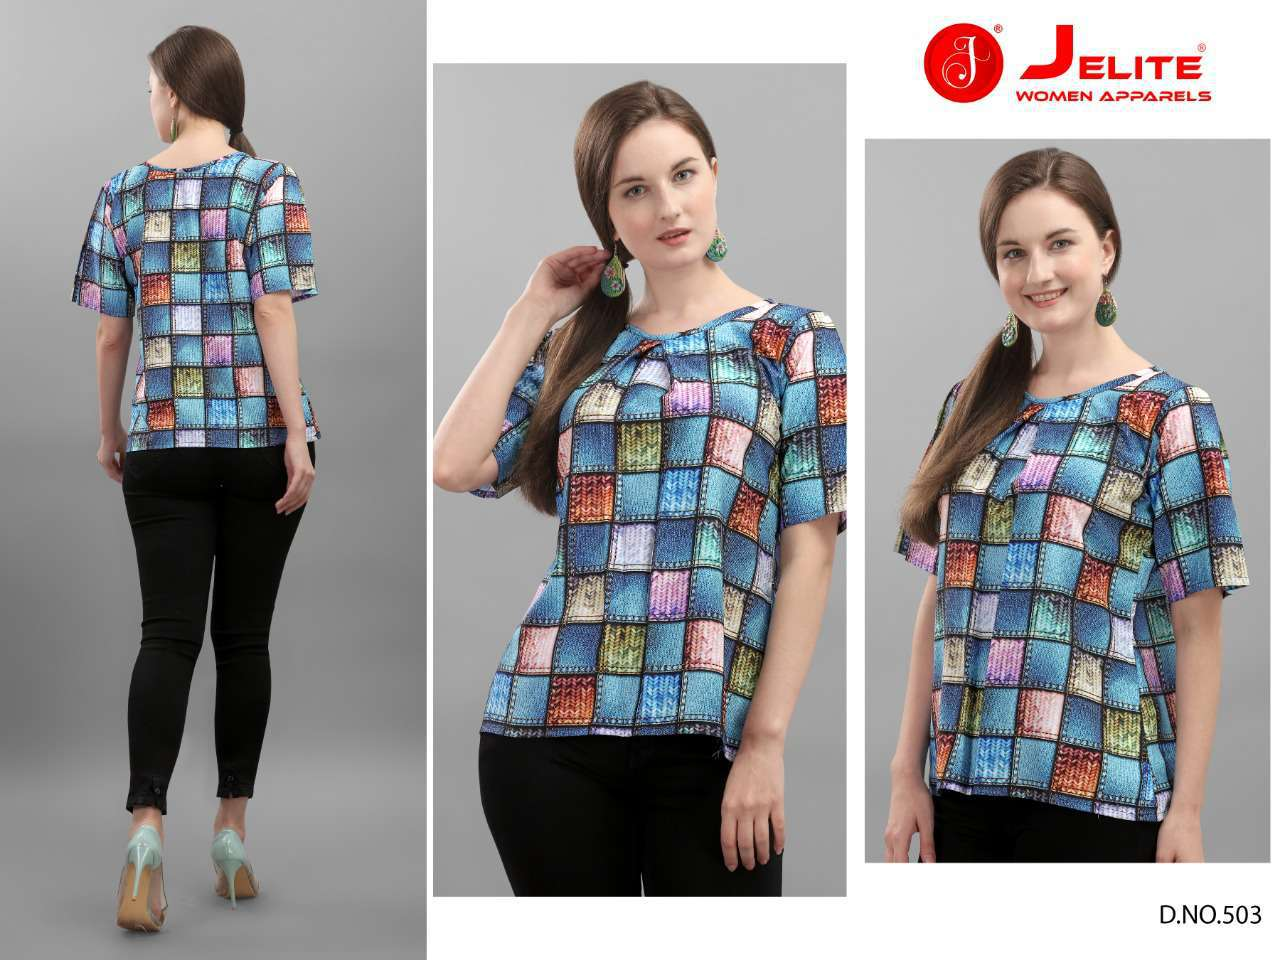 Jelite Orchid Tops Wholesale Catalog 8 Pcs 3 - Jelite Orchid Tops Wholesale Catalog 8 Pcs